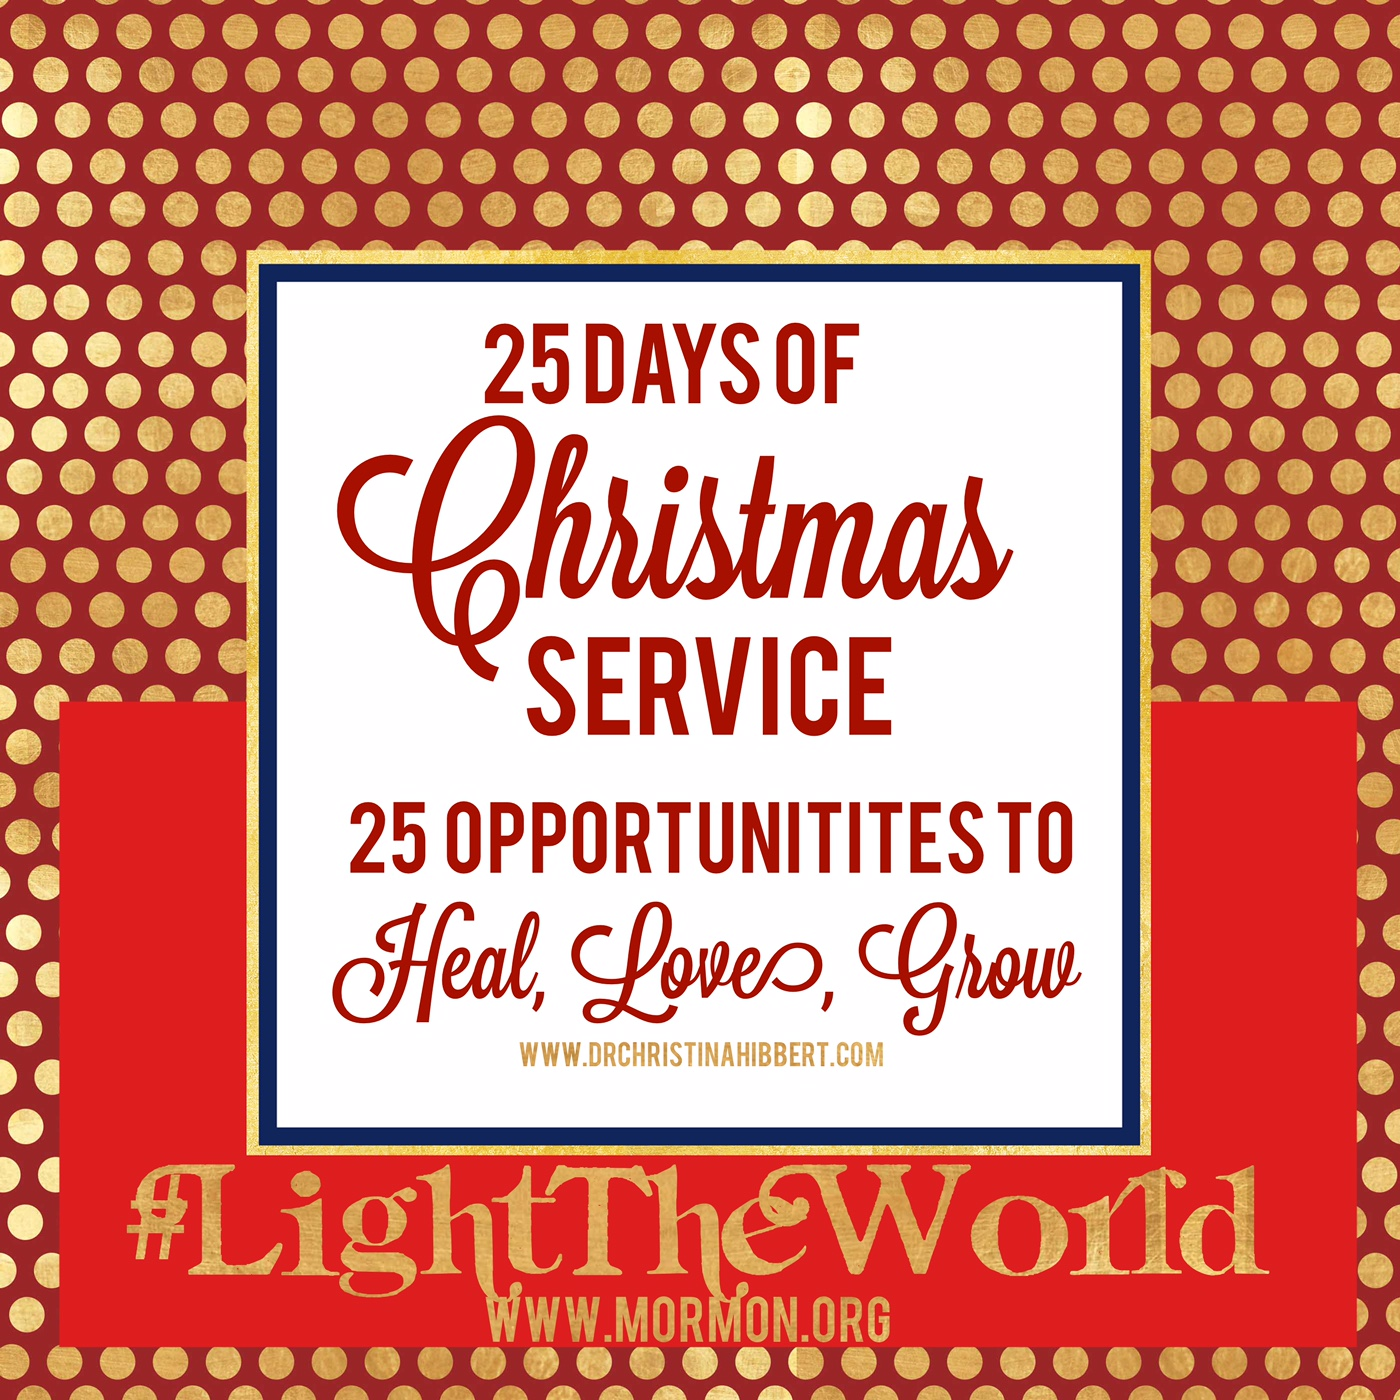 Lighttheworld 25 Days Of Christmas Service 25 Opportunities To